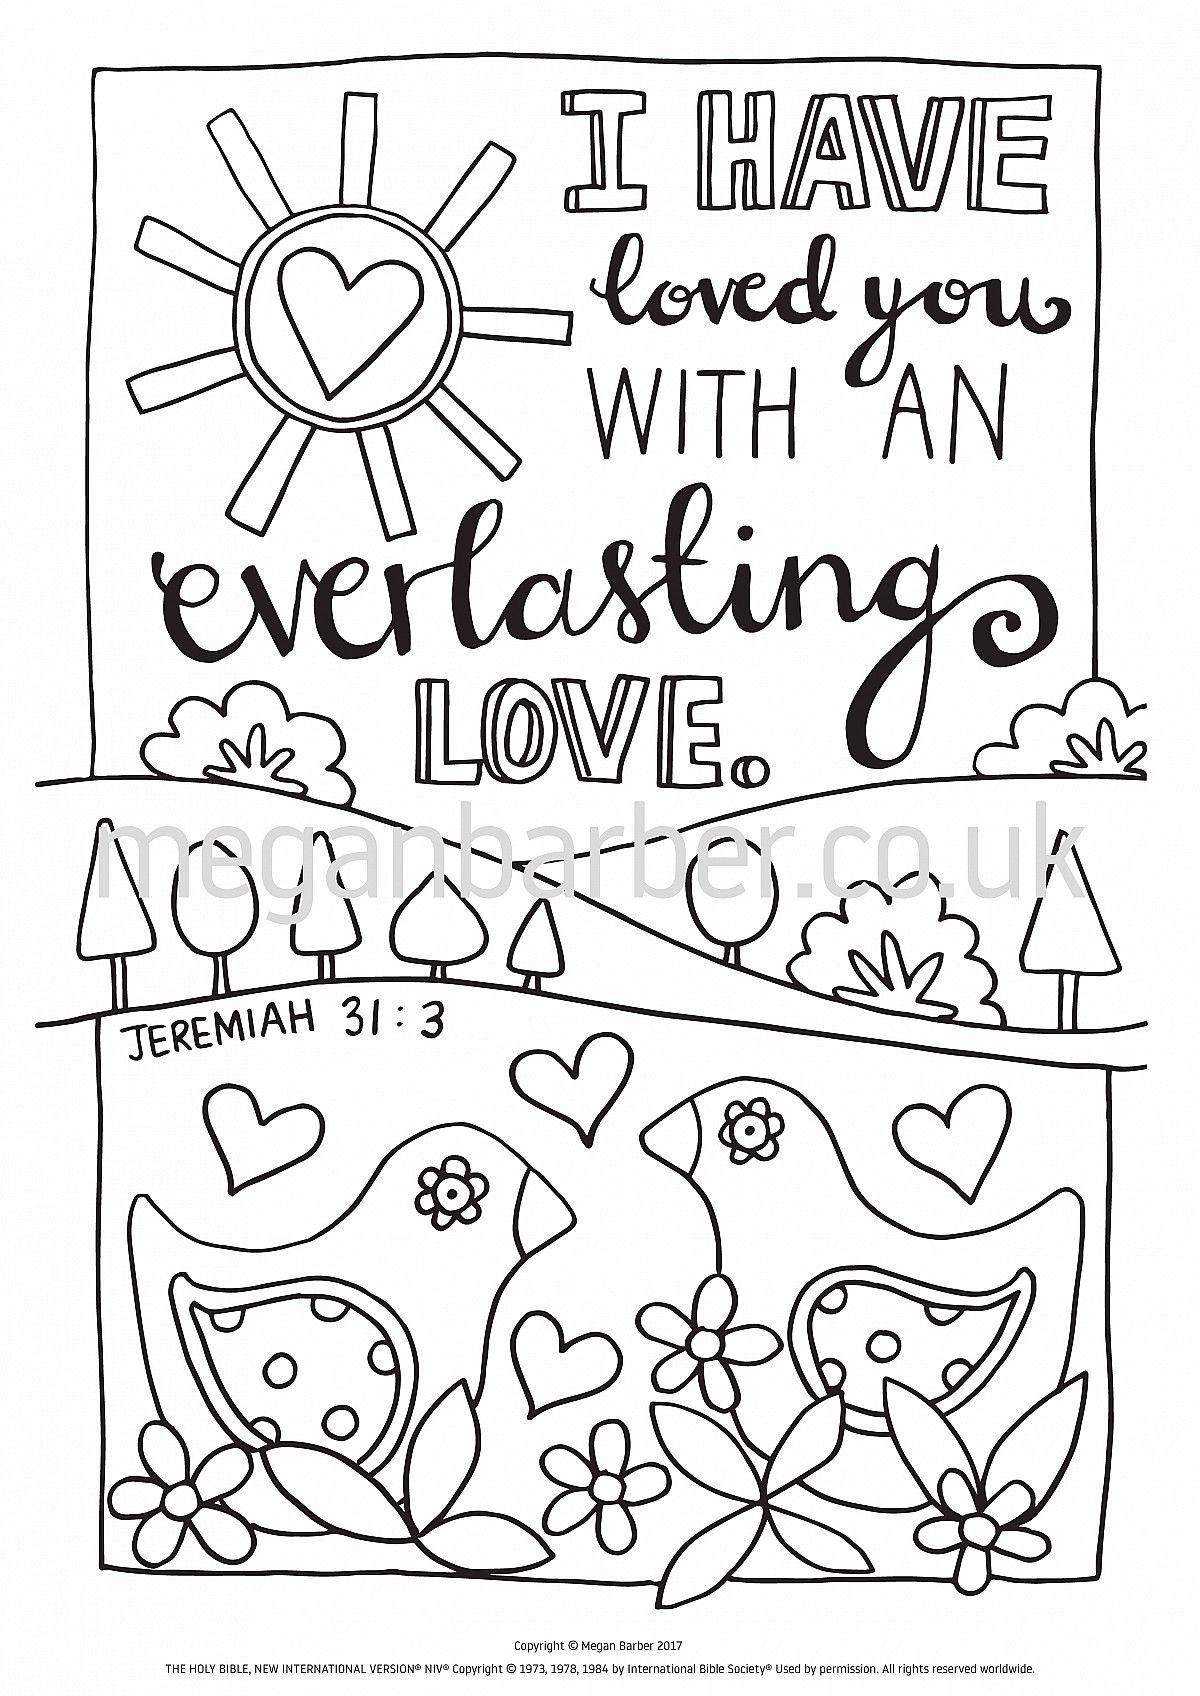 Colouring sheet featuring a simple typographic illustration with the ...